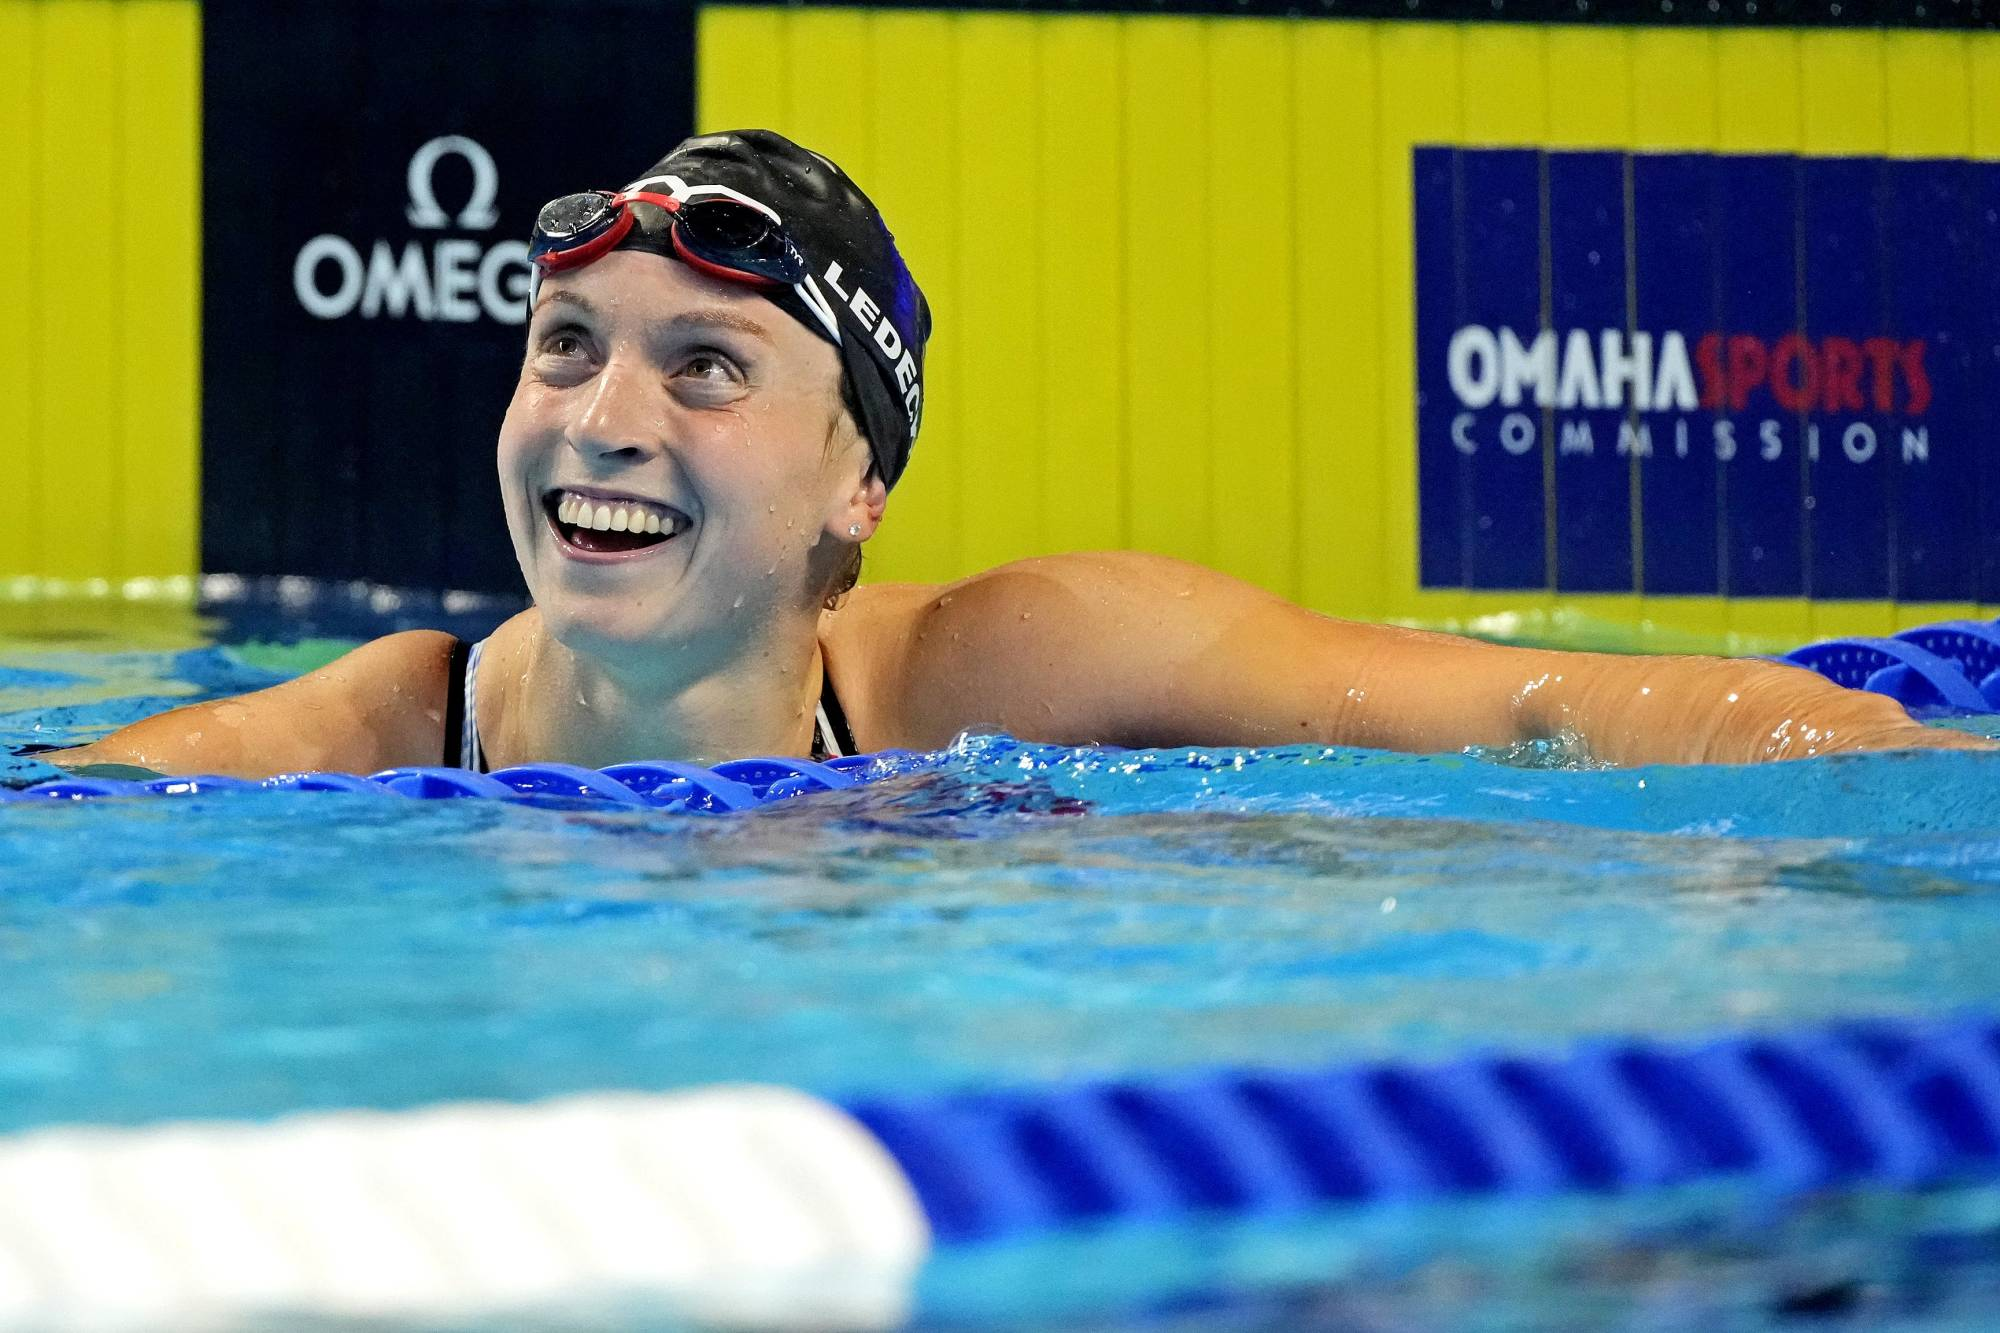 Katie Ledecky reacts after winning the 800m freestyle event during the U.S. Olympic trials in Omaha, Nebraska, on June 19. | USA TODAY / VIA REUTERS